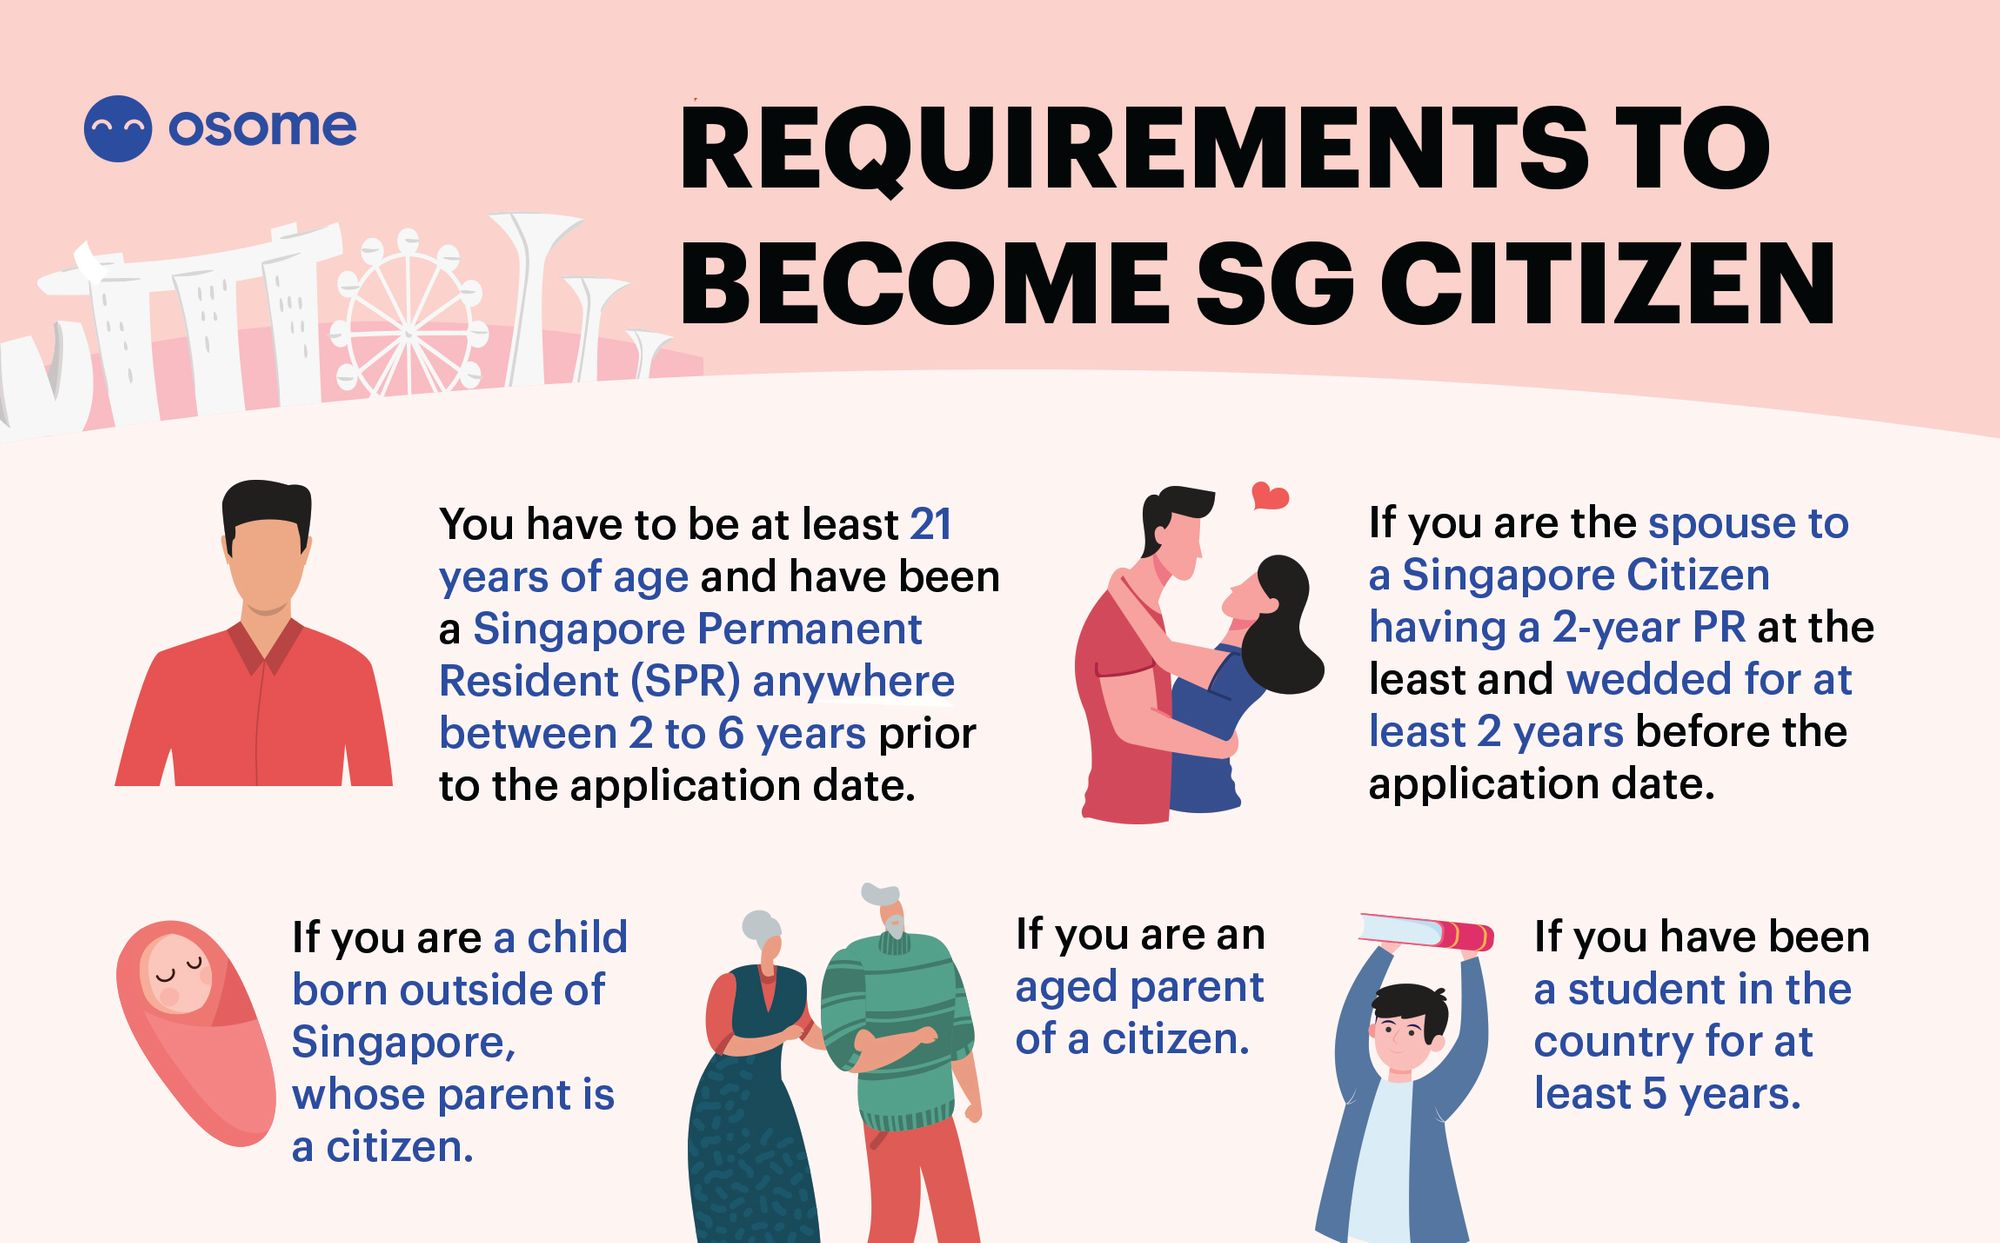 Requirements to Become SG Citizen